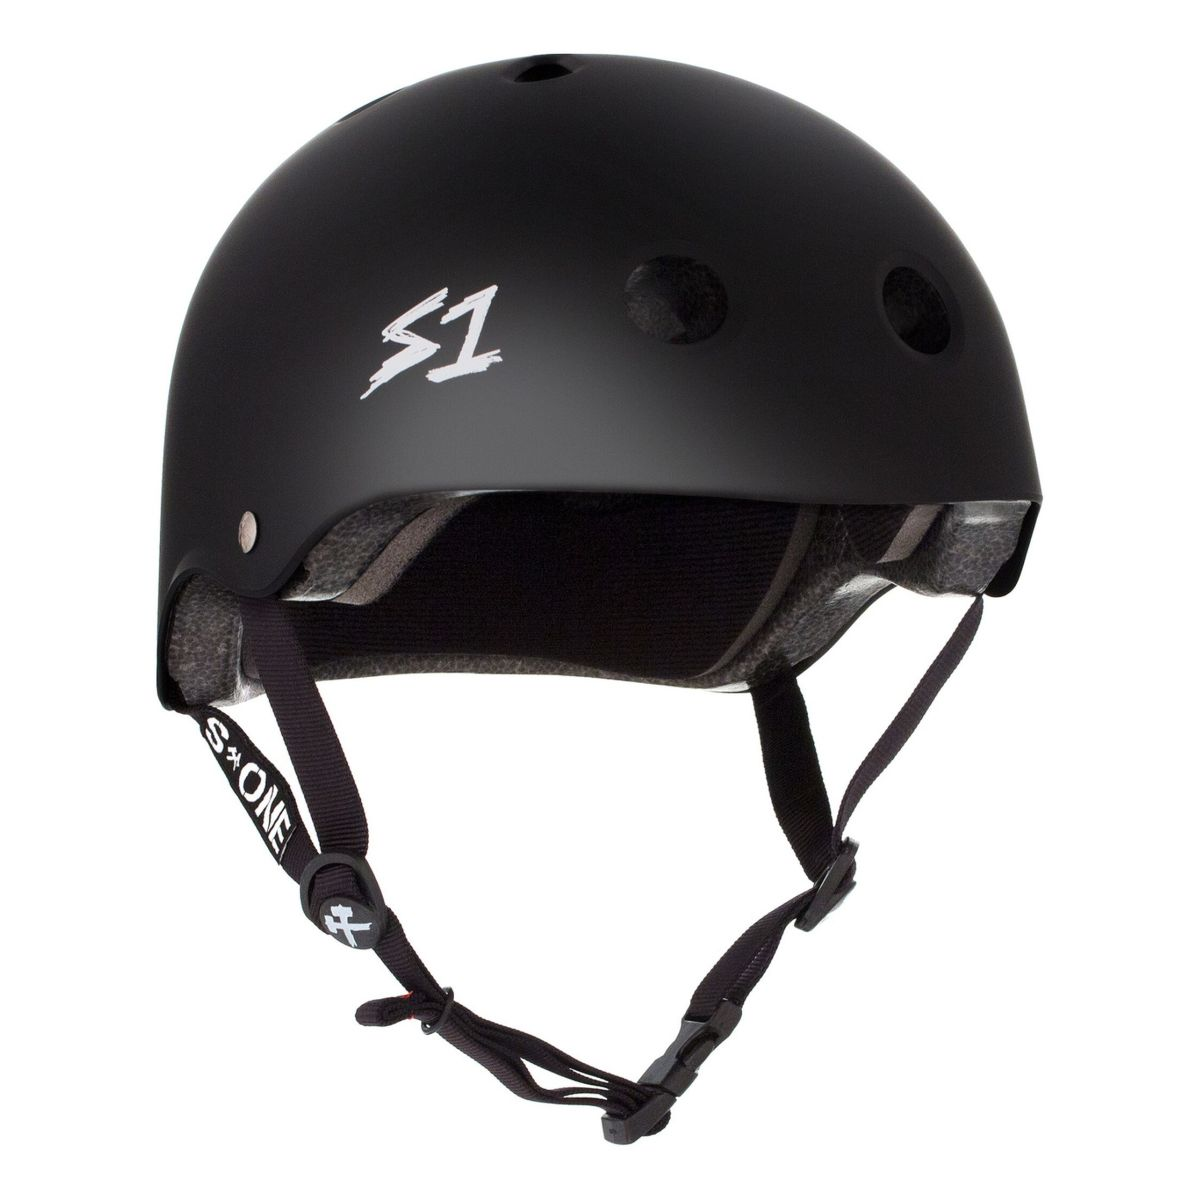 Kask S1 Lifer Black Matte